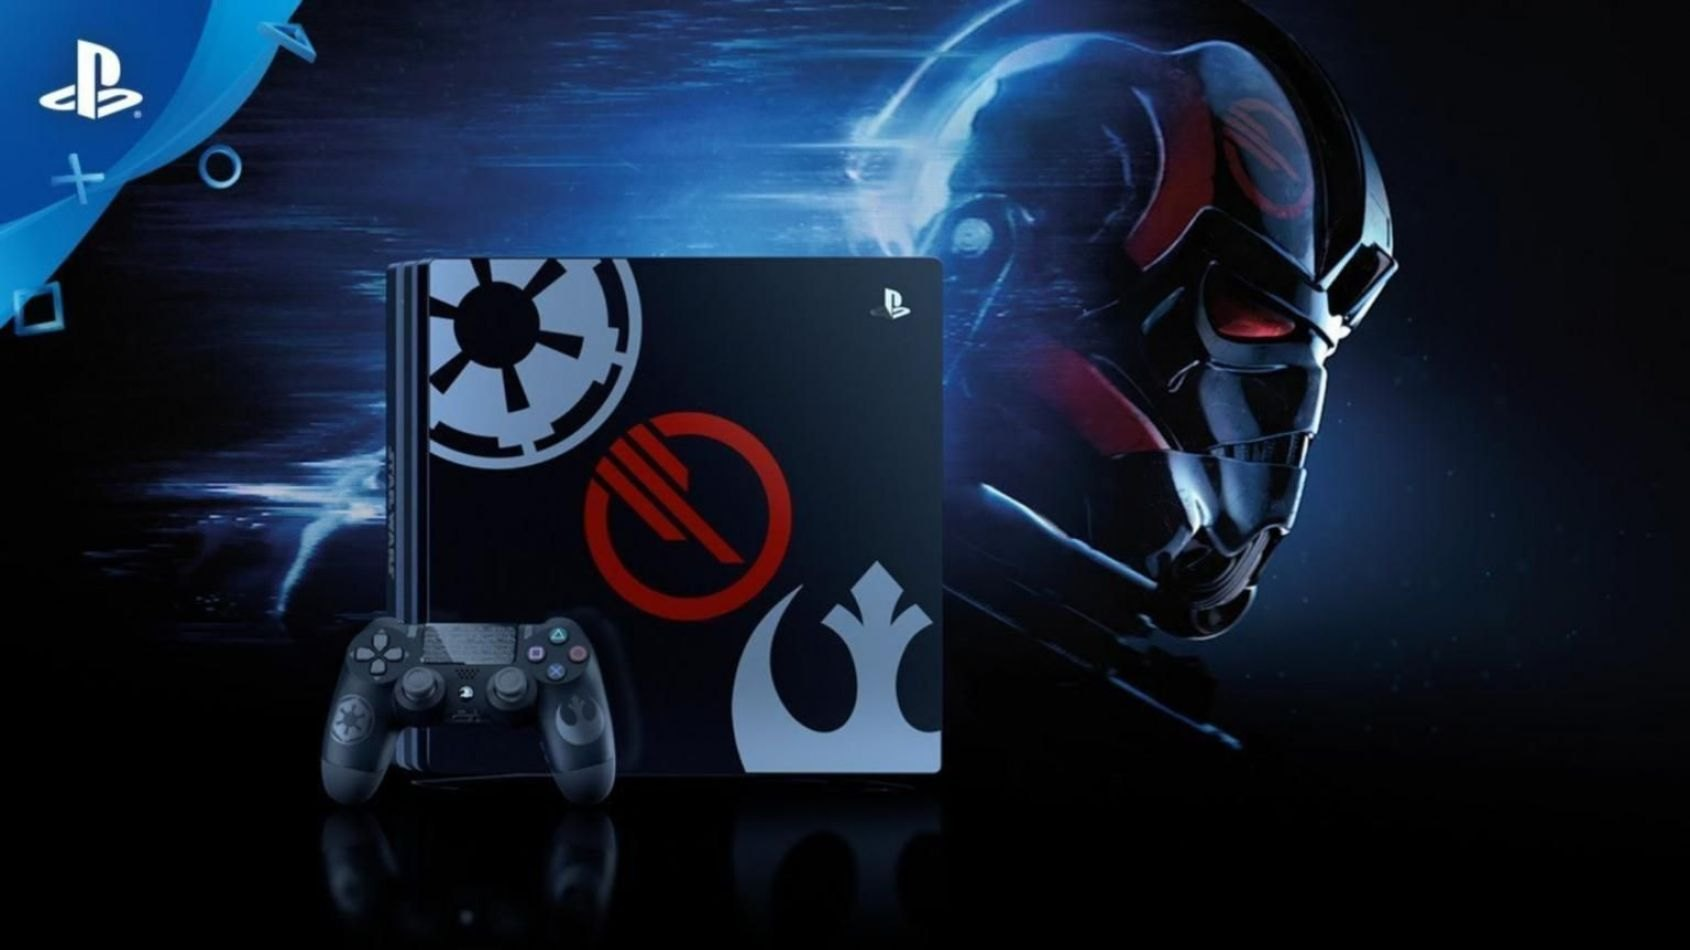 des packs ps4 battlefront ii en ditions limit es. Black Bedroom Furniture Sets. Home Design Ideas